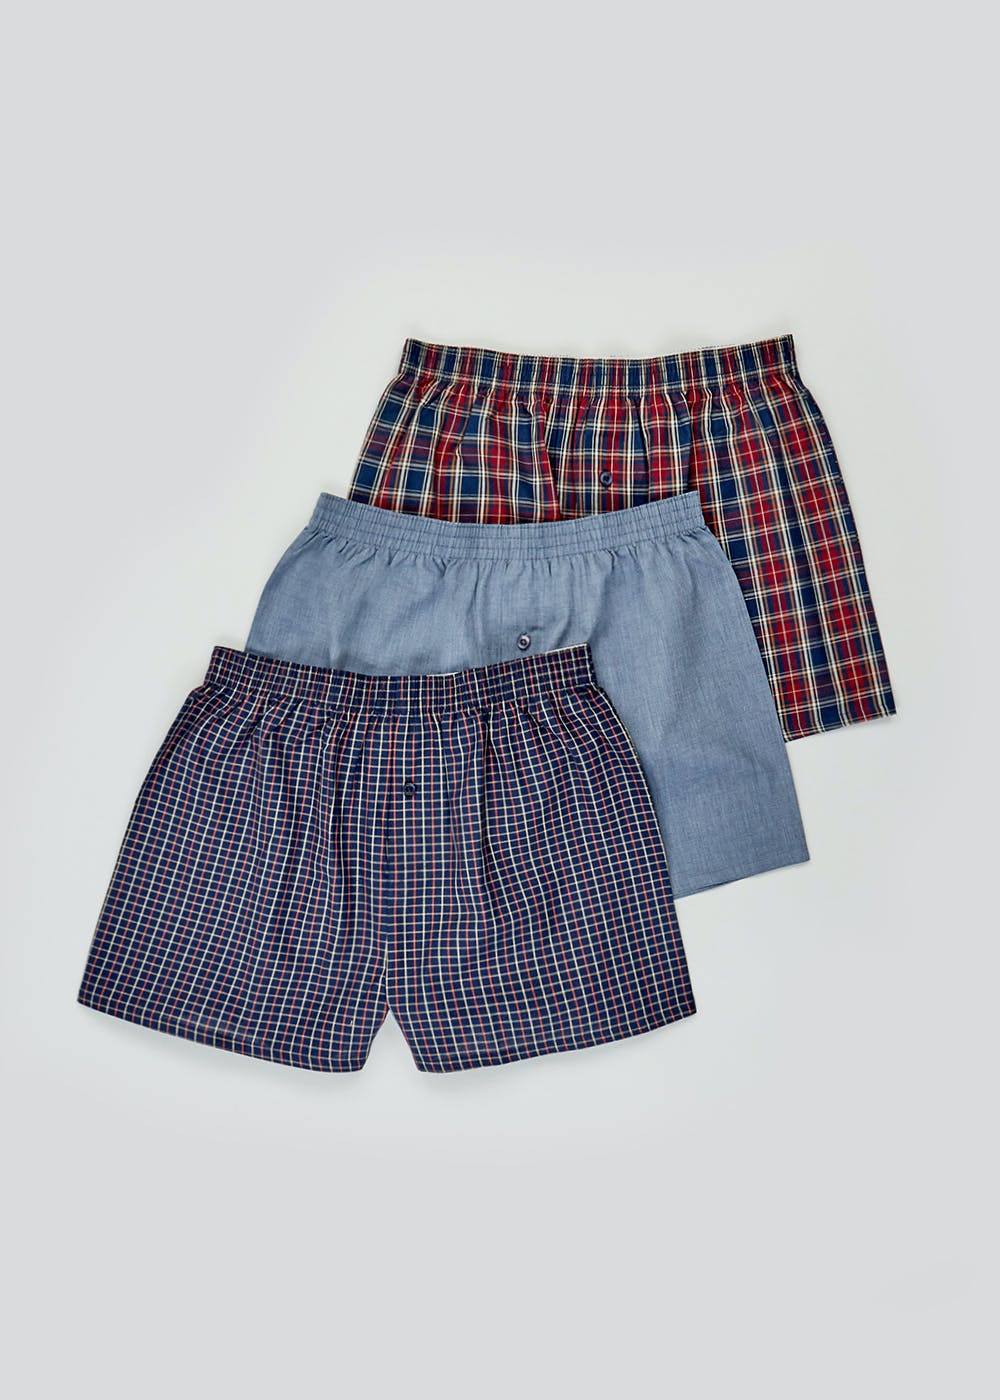 3 Pack Woven Boxers – Multi